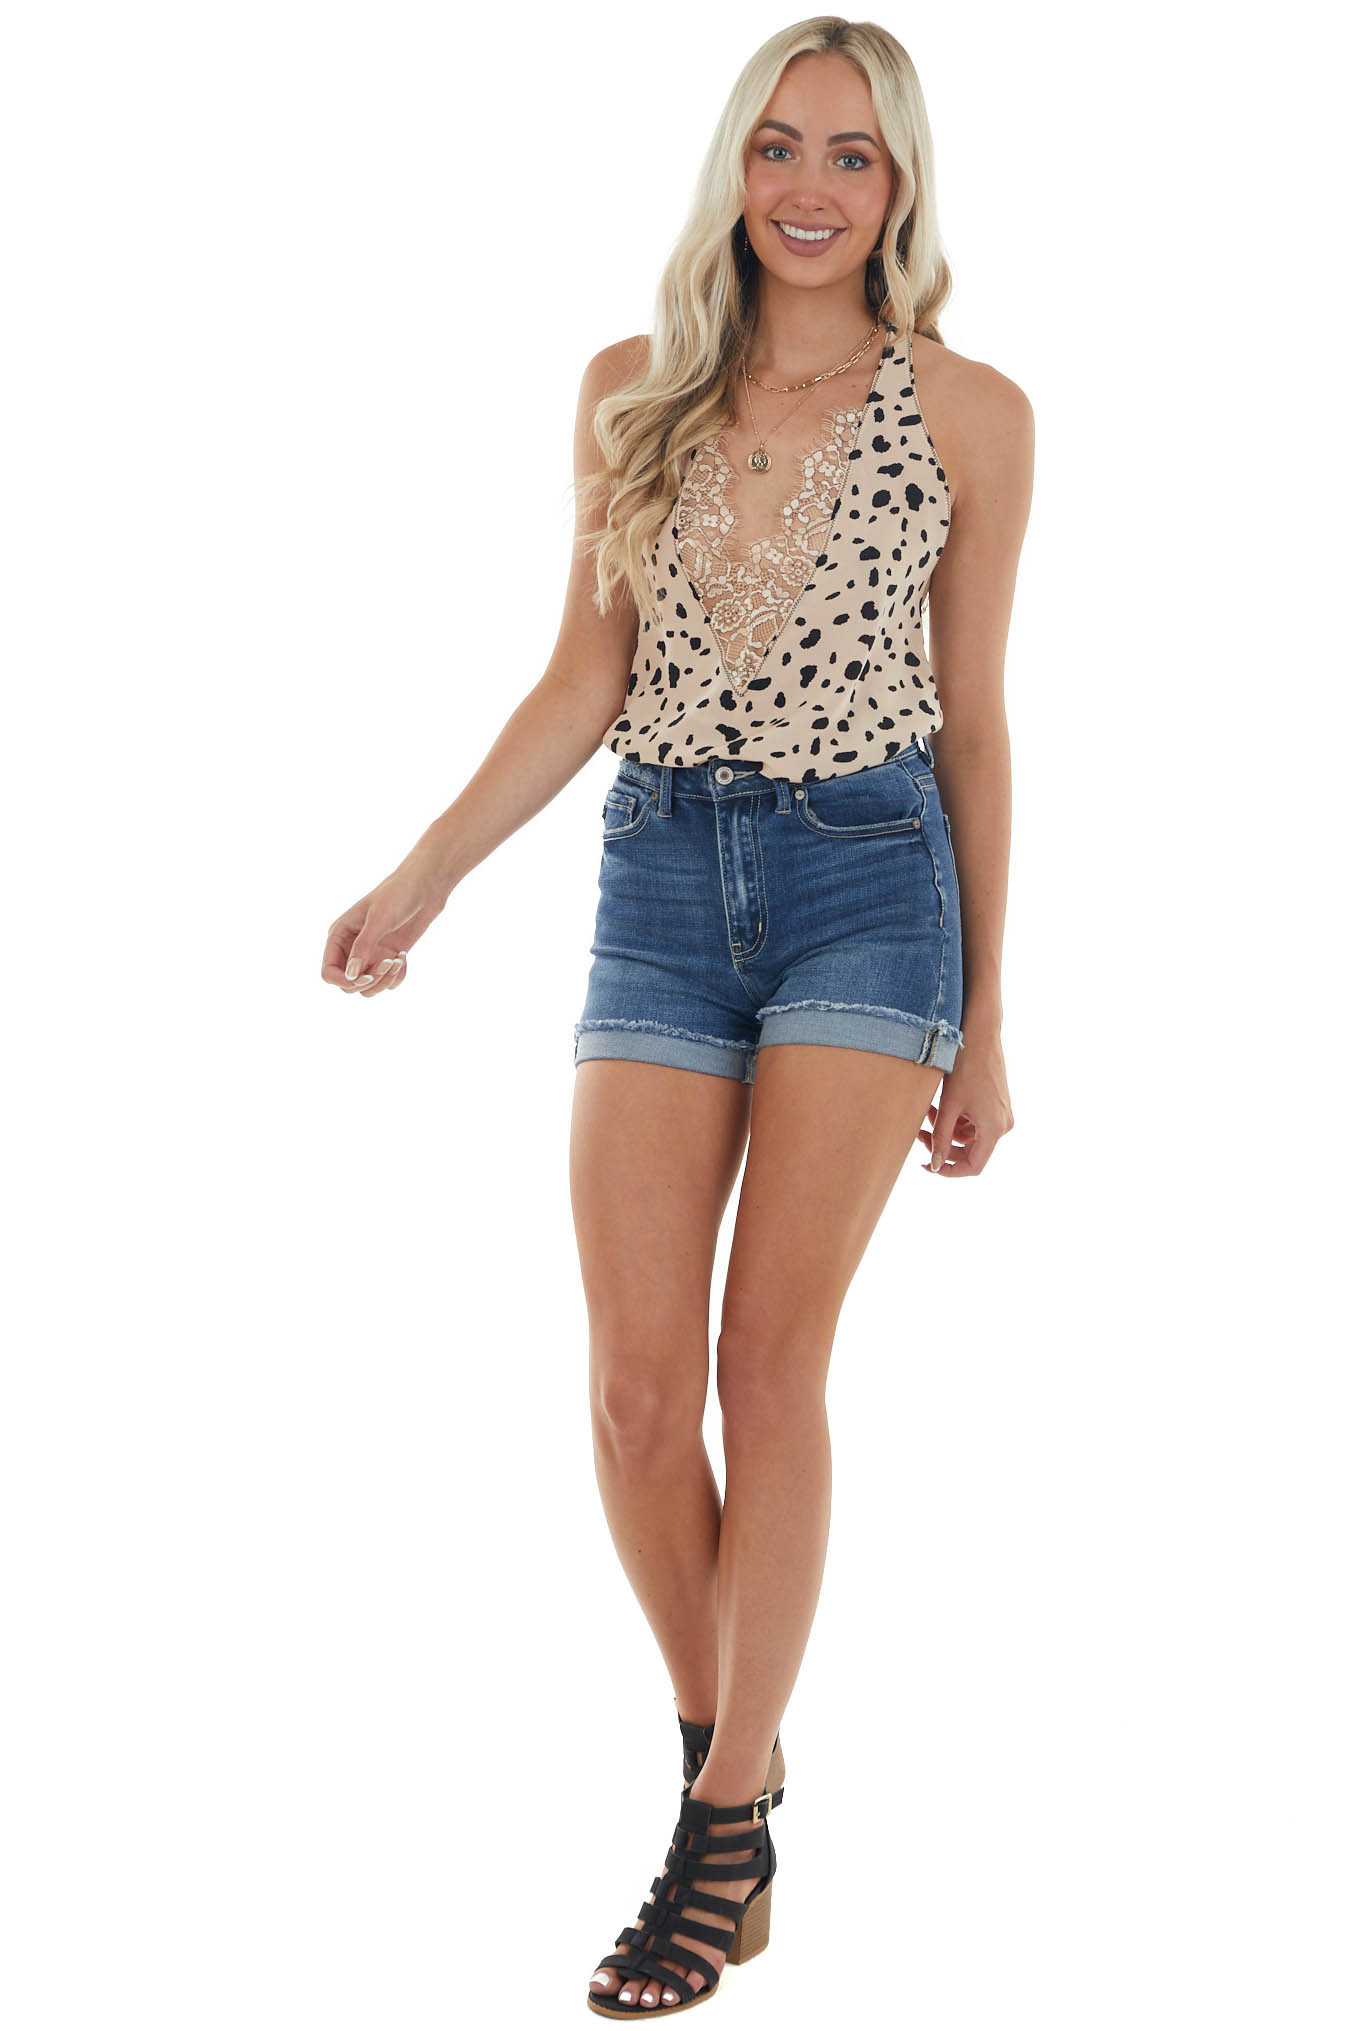 Sand Leopard Tank Top with Eyelash Lace Detail